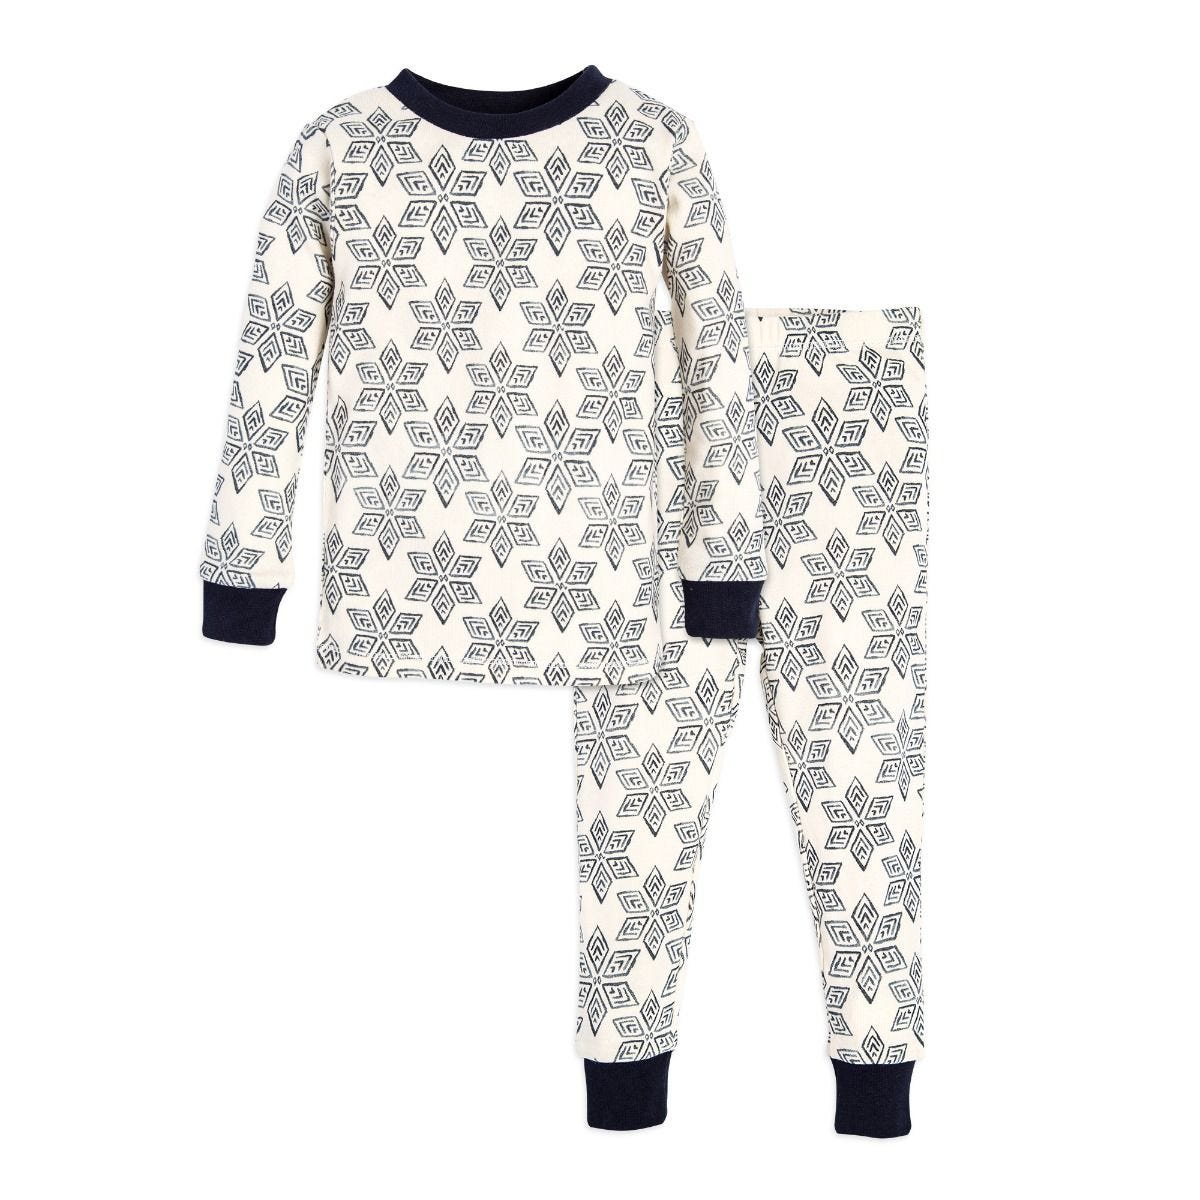 Arctic Snowflakes Organic Toddler Holiday Matching Pajamas